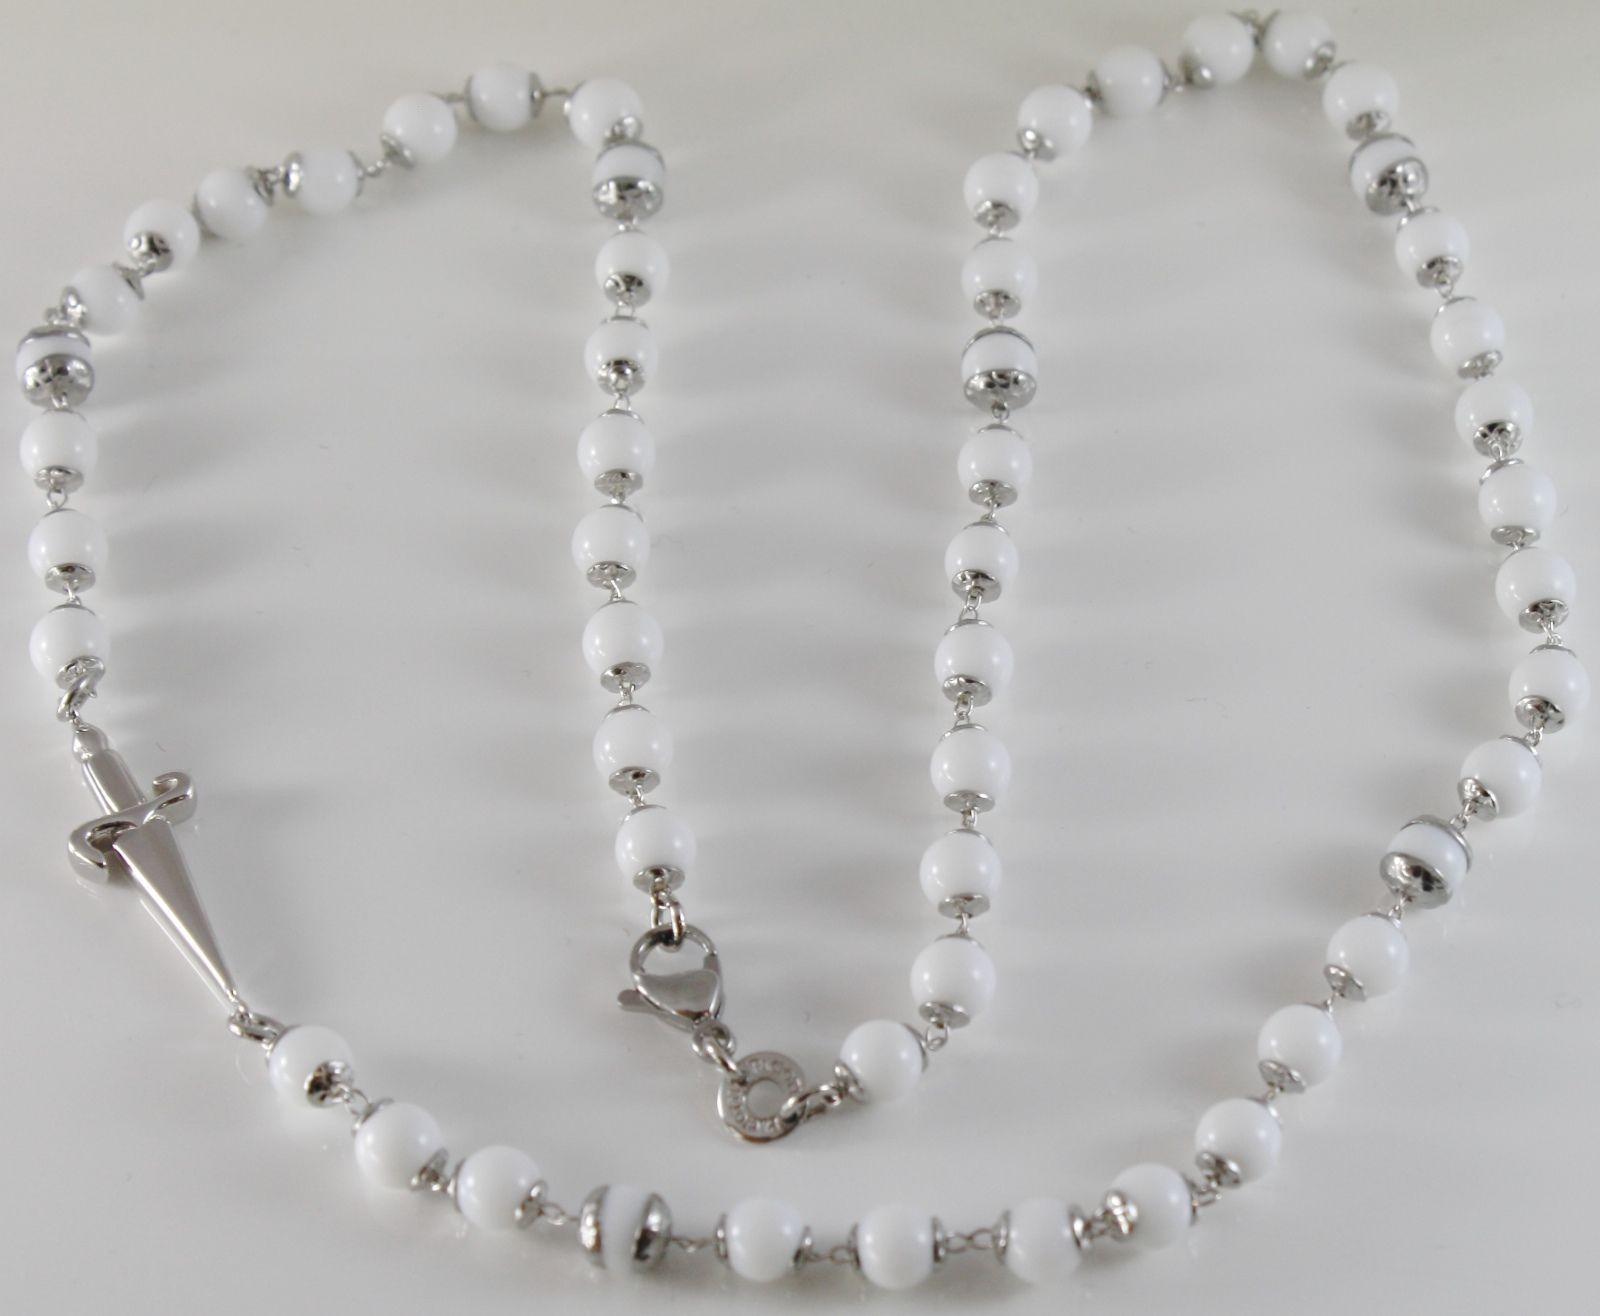 925 STERLING SILVER NECKLACE BY CESARE PACIOTTI WITH WHITE AGATE SWORD 26 inches